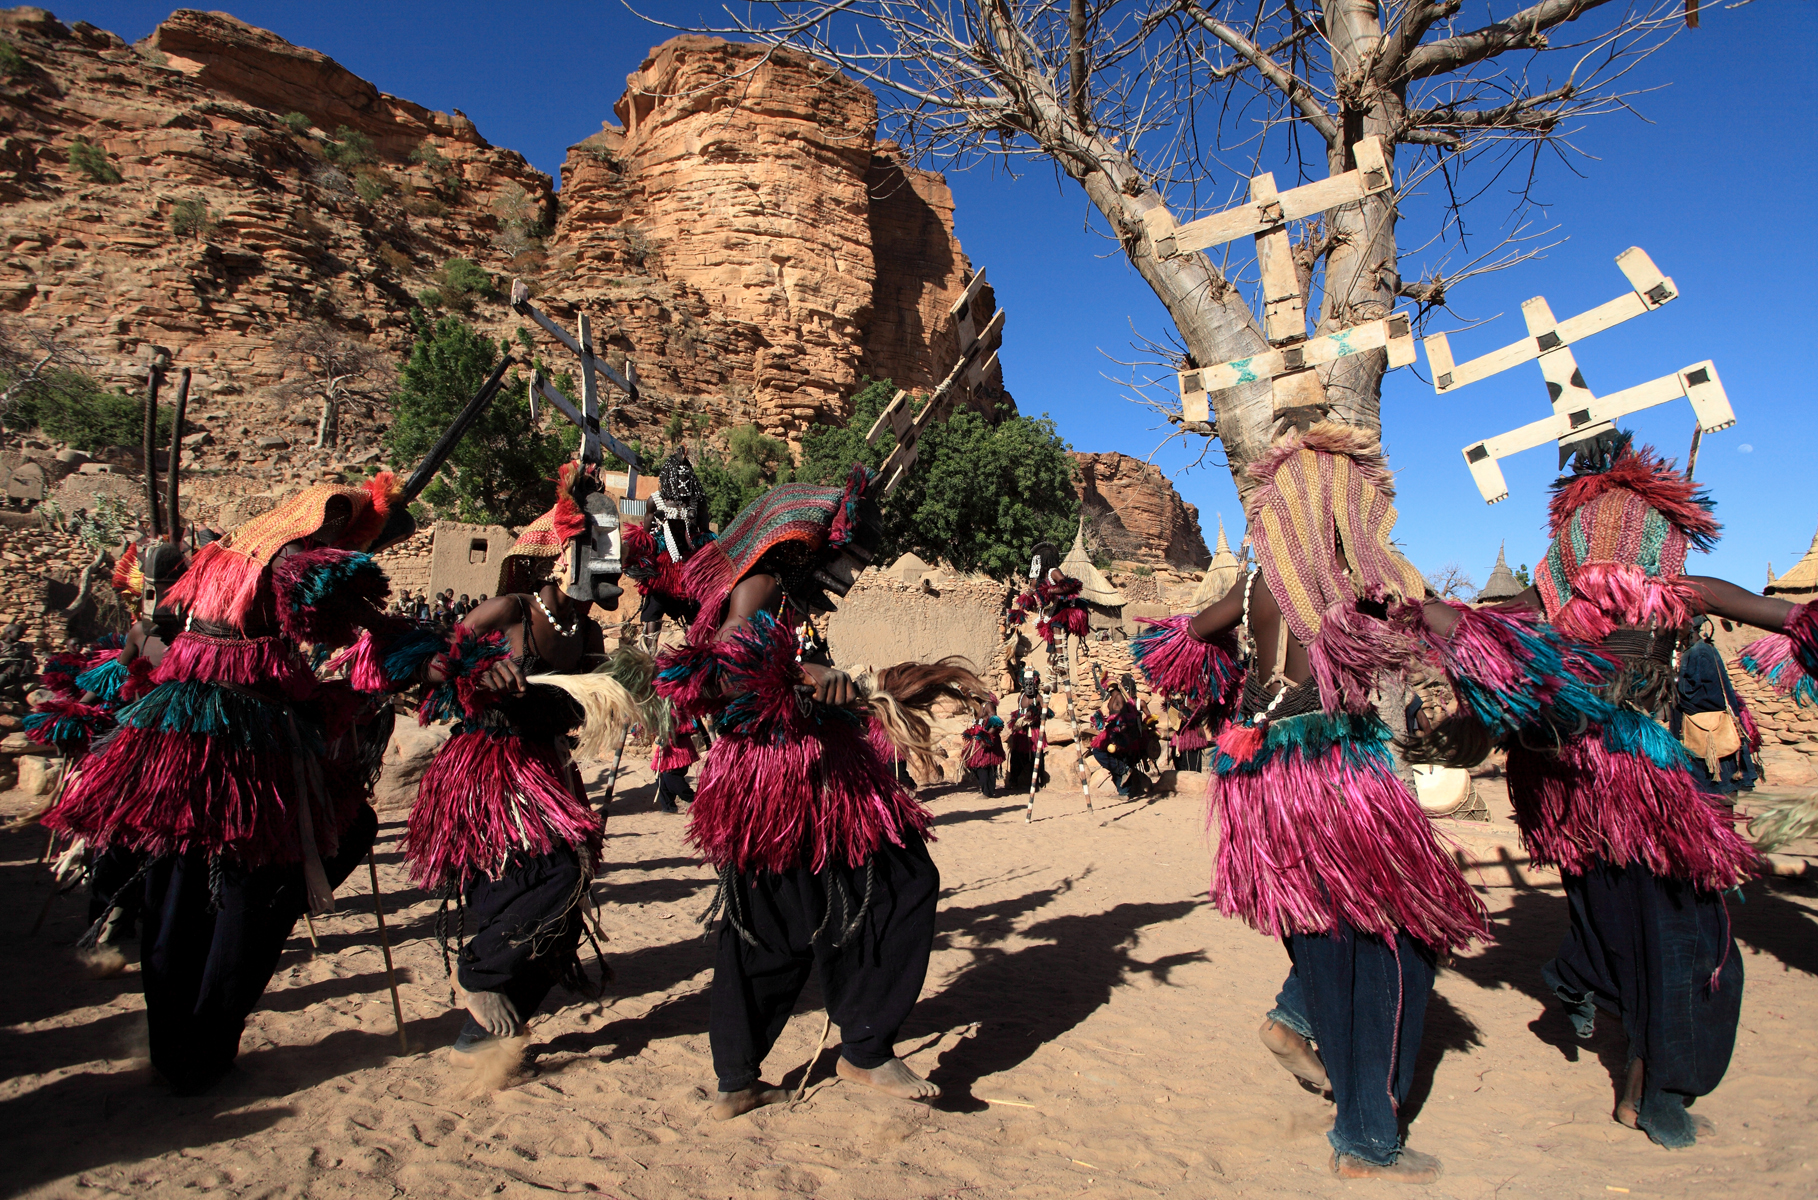 Dogon tribe of Mali' One People, Many Mysteries - Africa Facts Zone